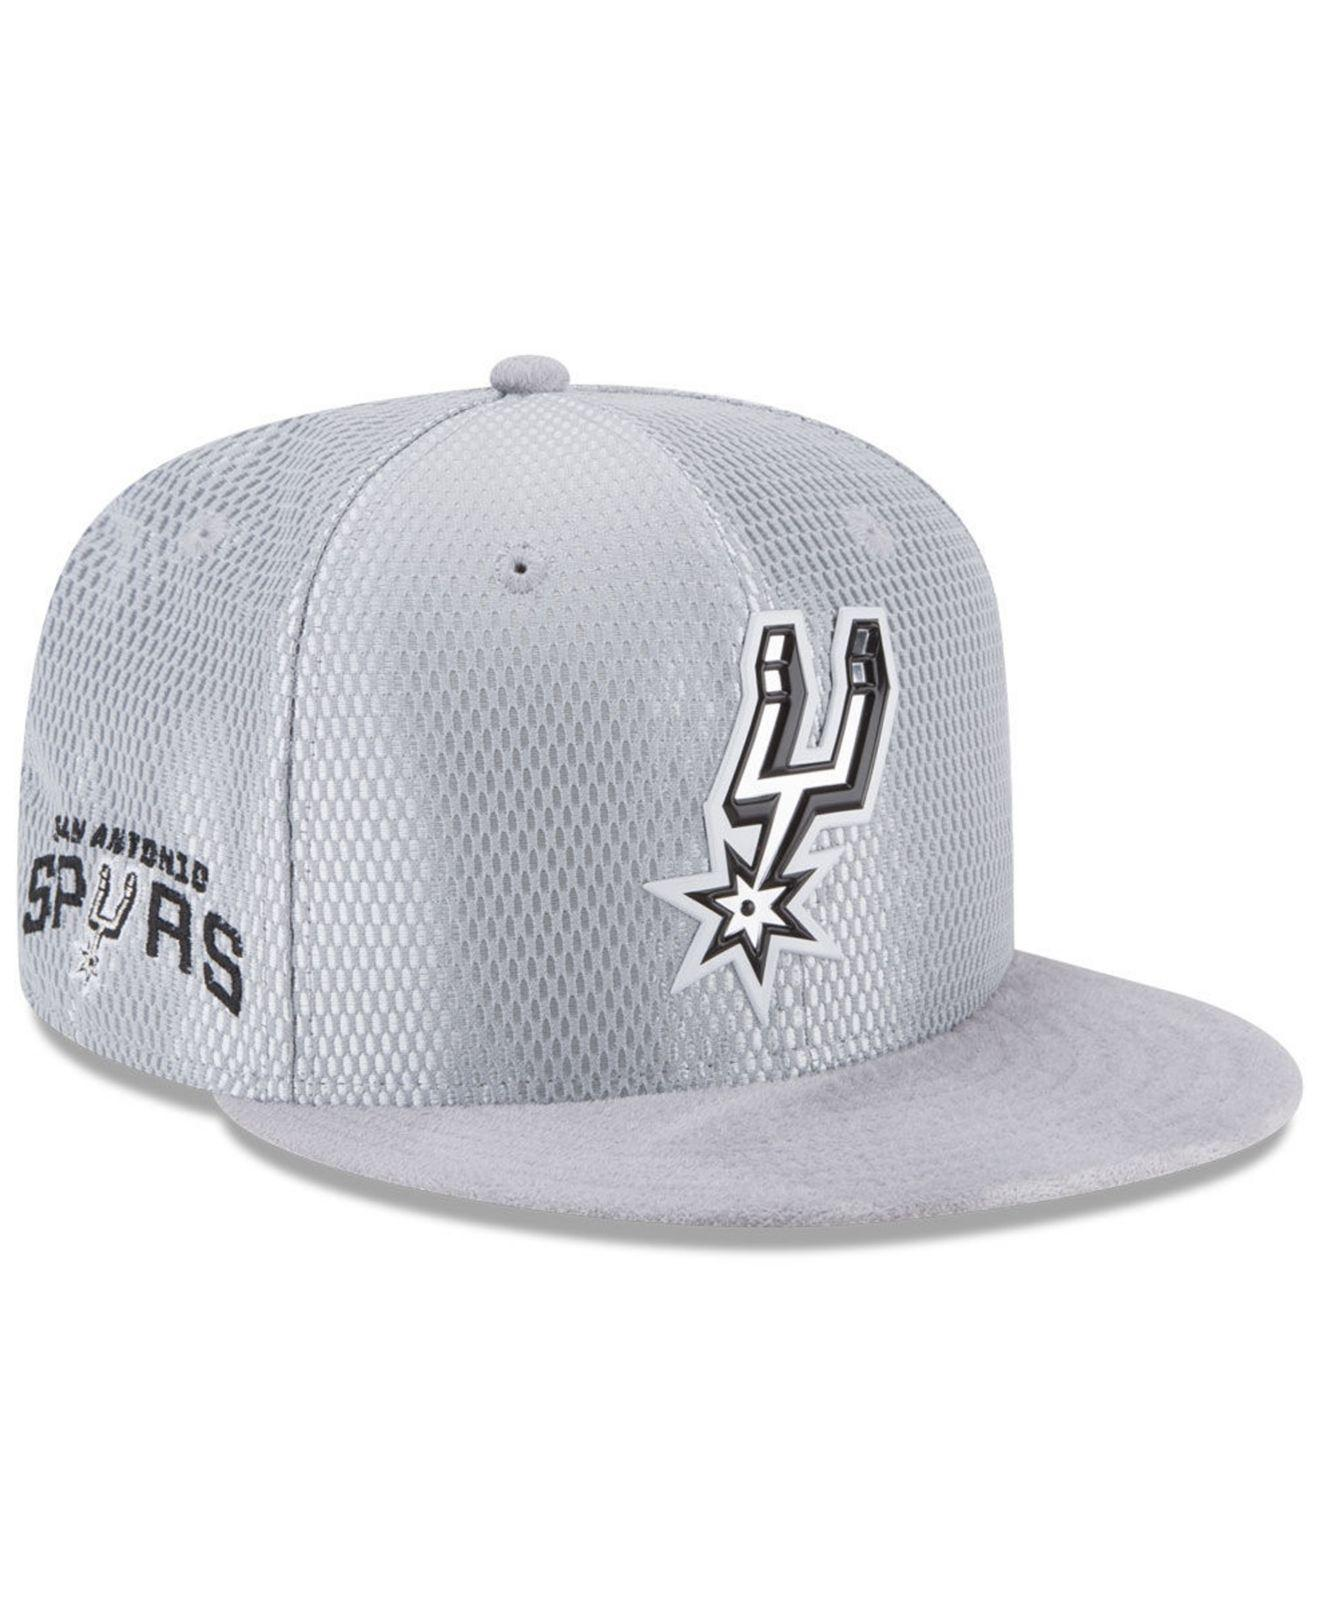 new arrival f4276 c5ff9 Lyst - KTZ San Antonio Spurs On Court Reverse 9fifty Snapback Cap ...